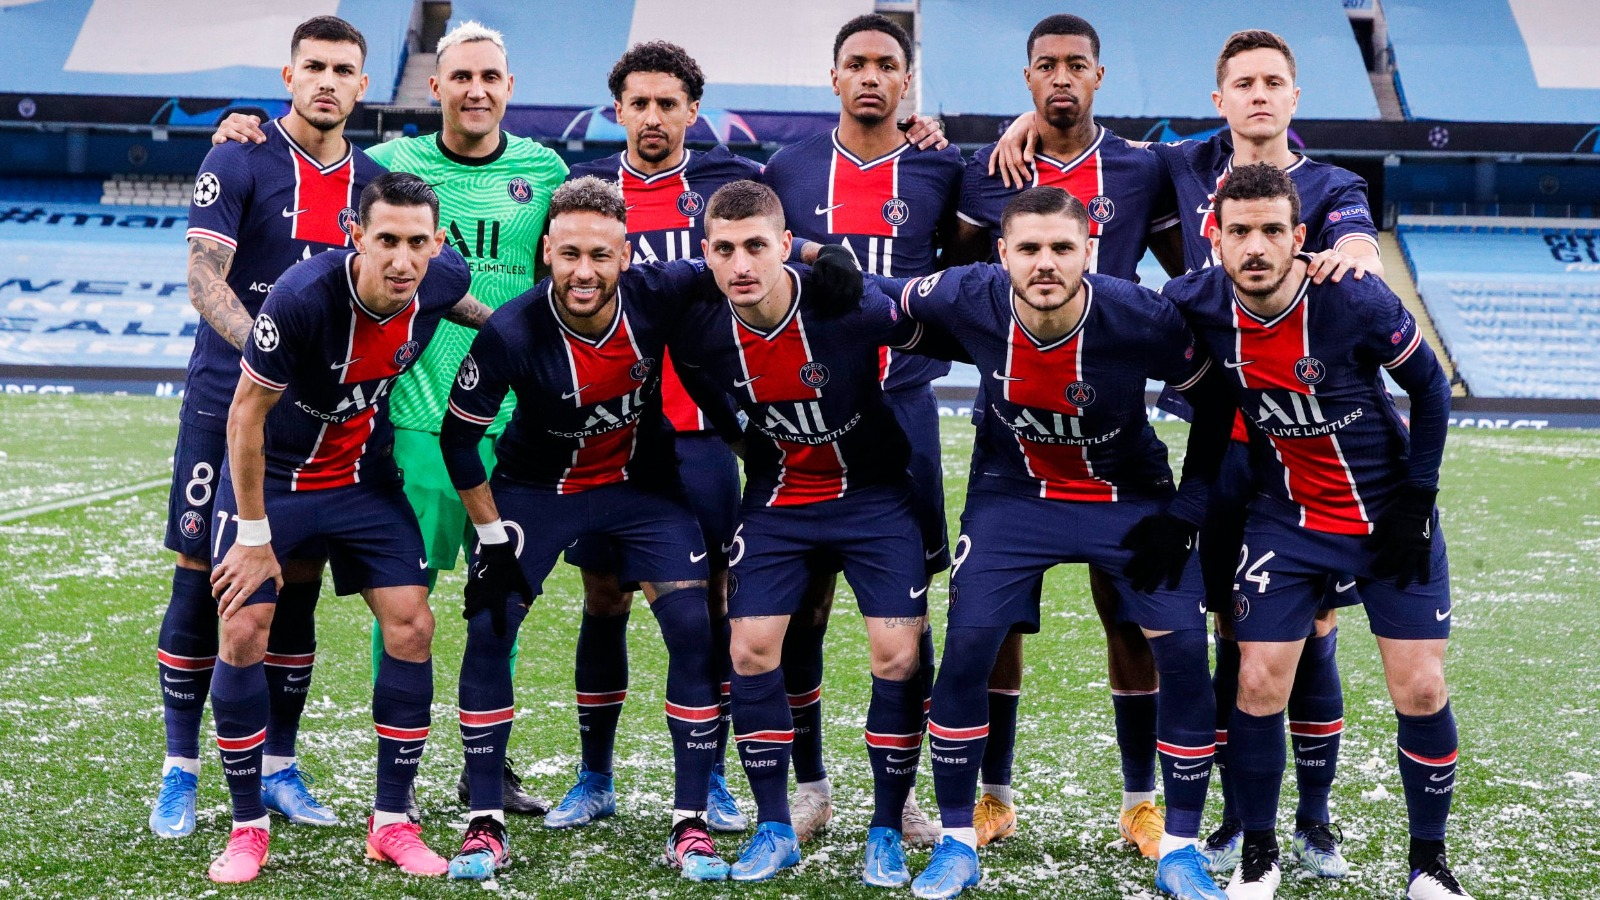 PSG [PHOTO CREDIT: @PSG_English]